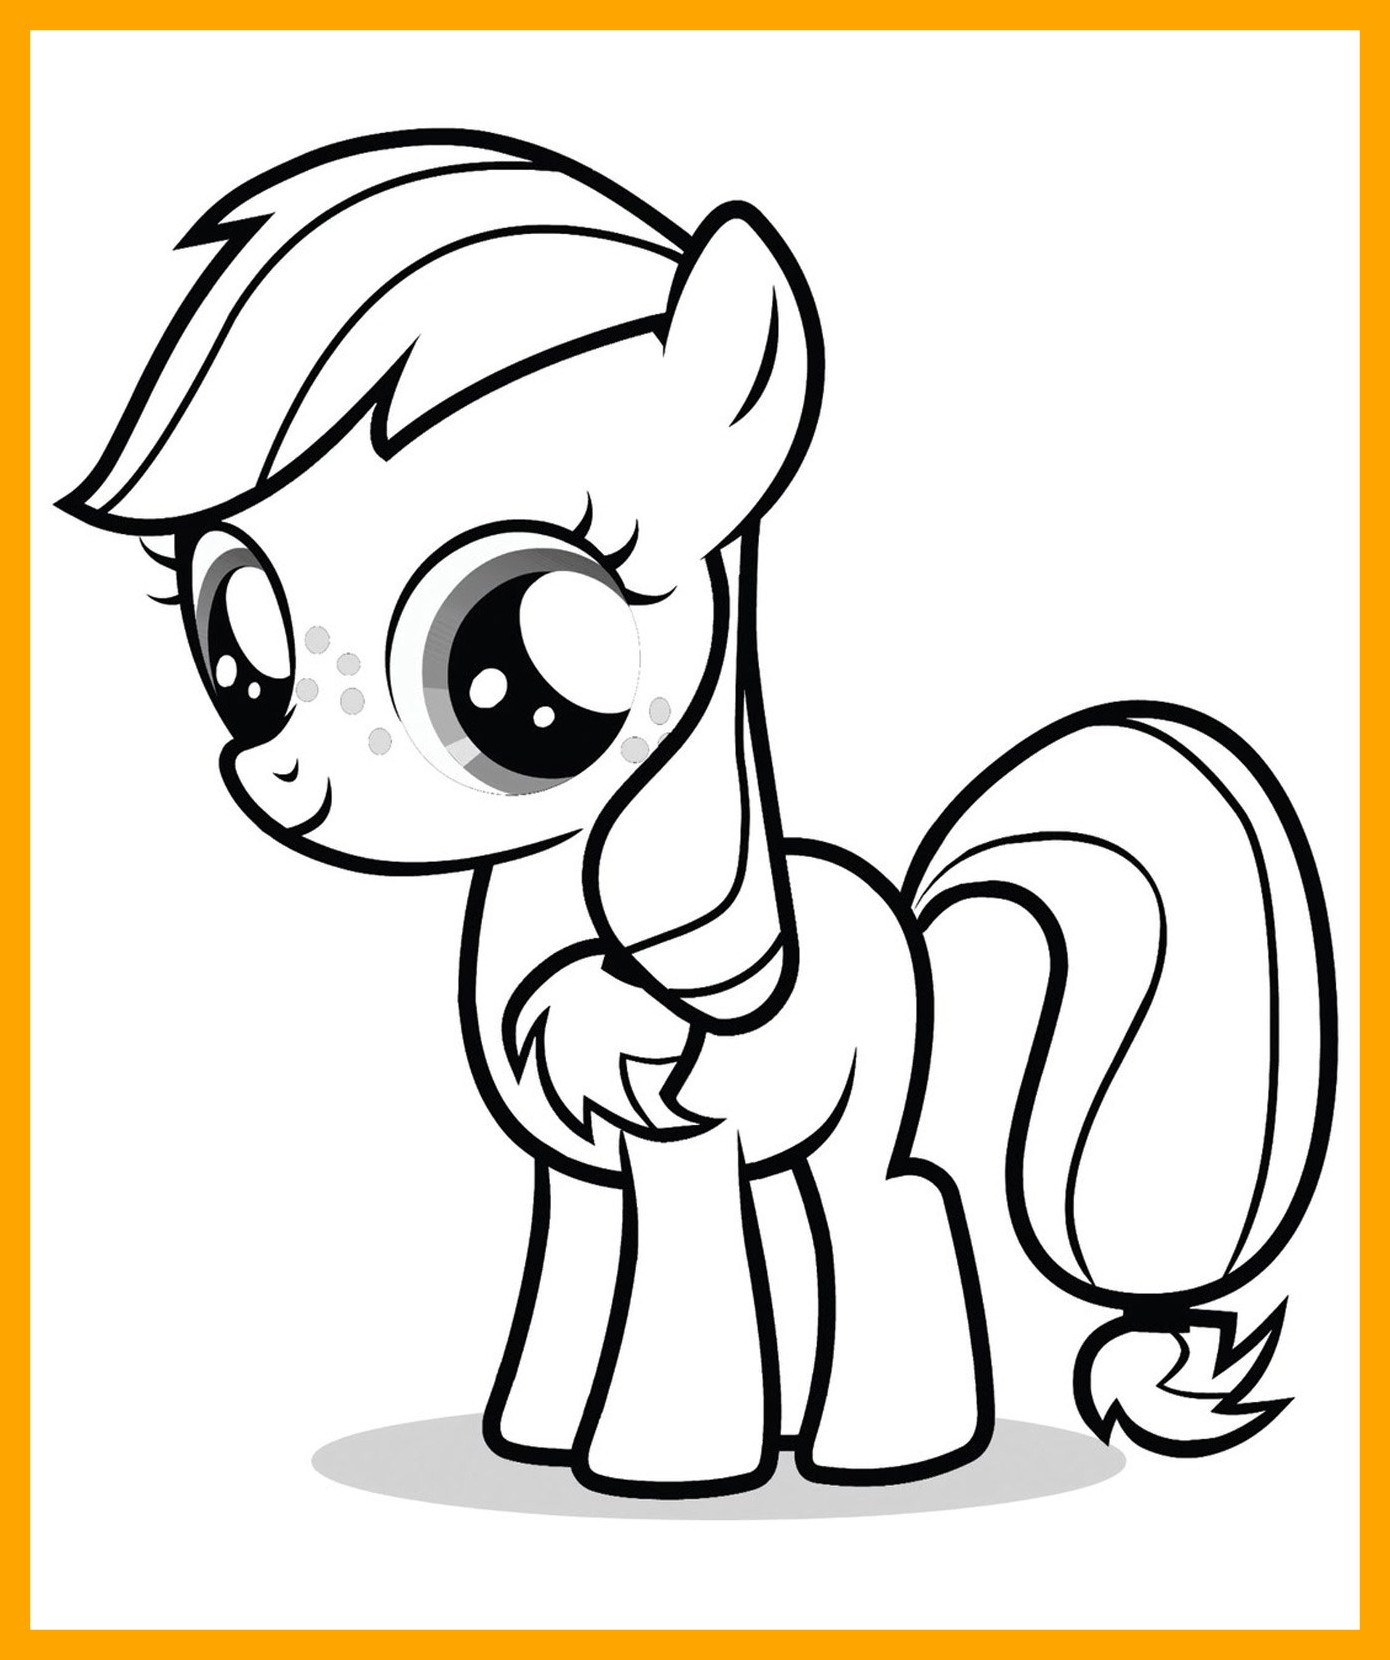 1390x1660 Marvelous My Little Pony Coloring Pages Printable Wallpaper Hd